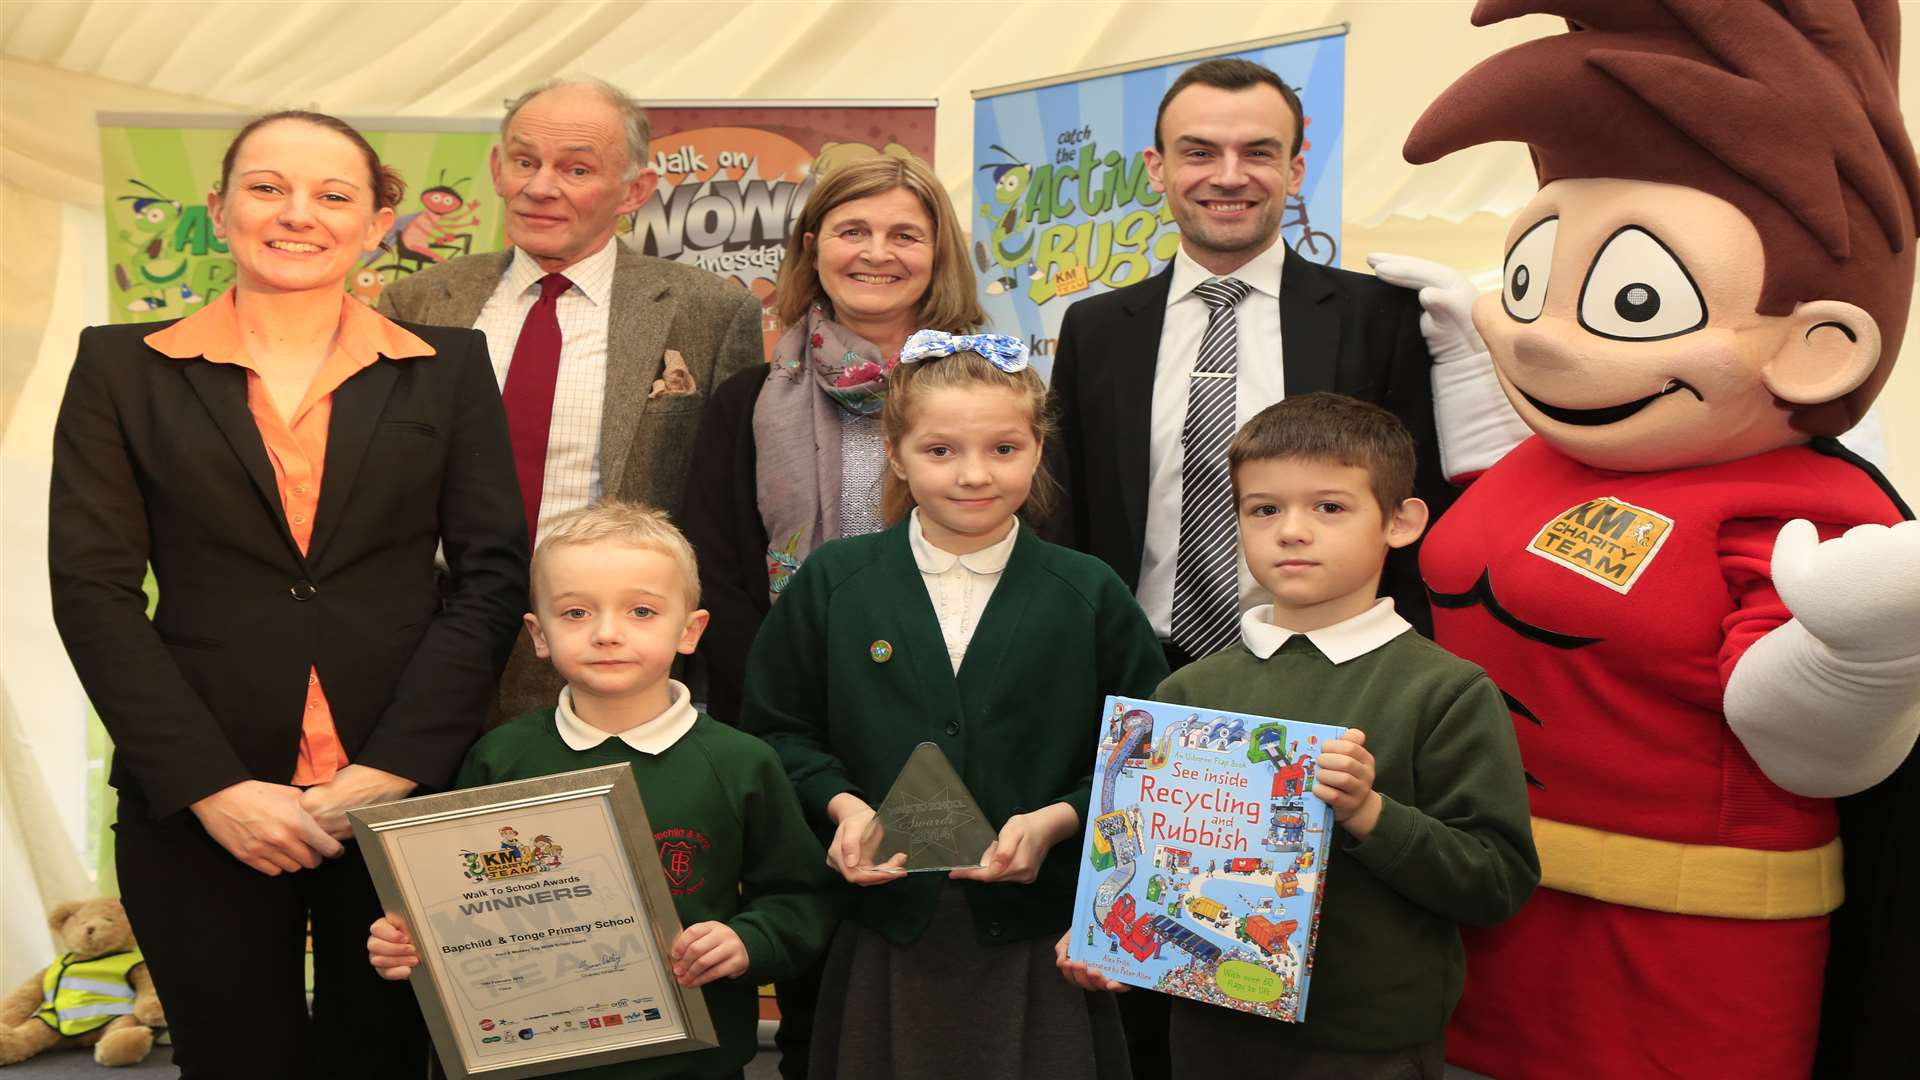 Kent wide Top WOW School winners Bapchild and Tonge Primary School at the KM Walk to School Awards with mascot Wowzer and supporters from Three R's Teacher Recruitment, Kent County Council and Countrystyle Recycling at Commissioner's House, Historic Dockyard, Chatham.